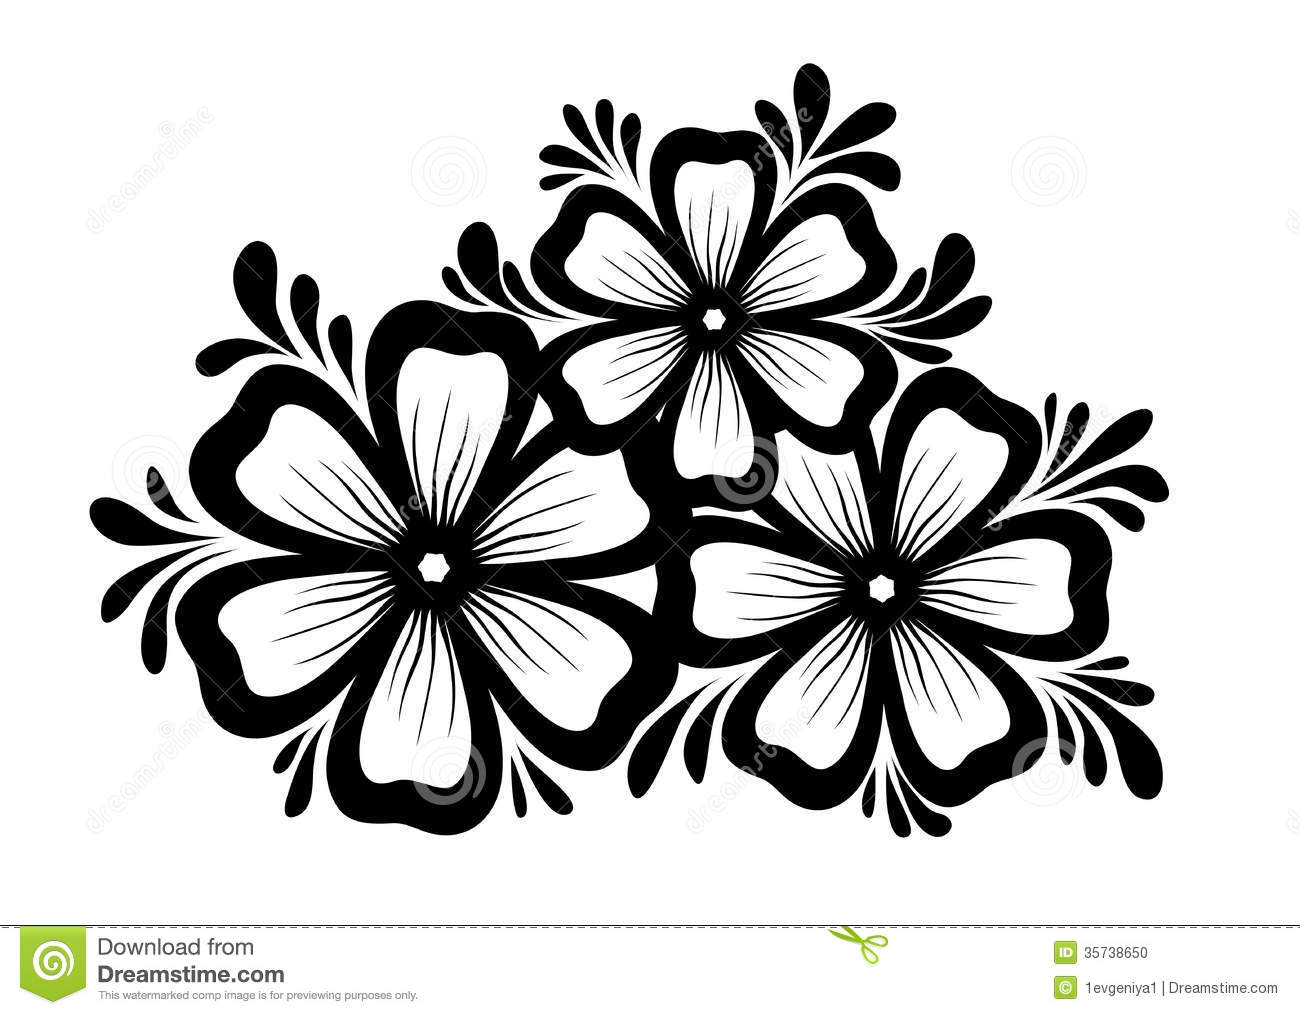 10 Pretty Black And White Designs Images Black And White Flower